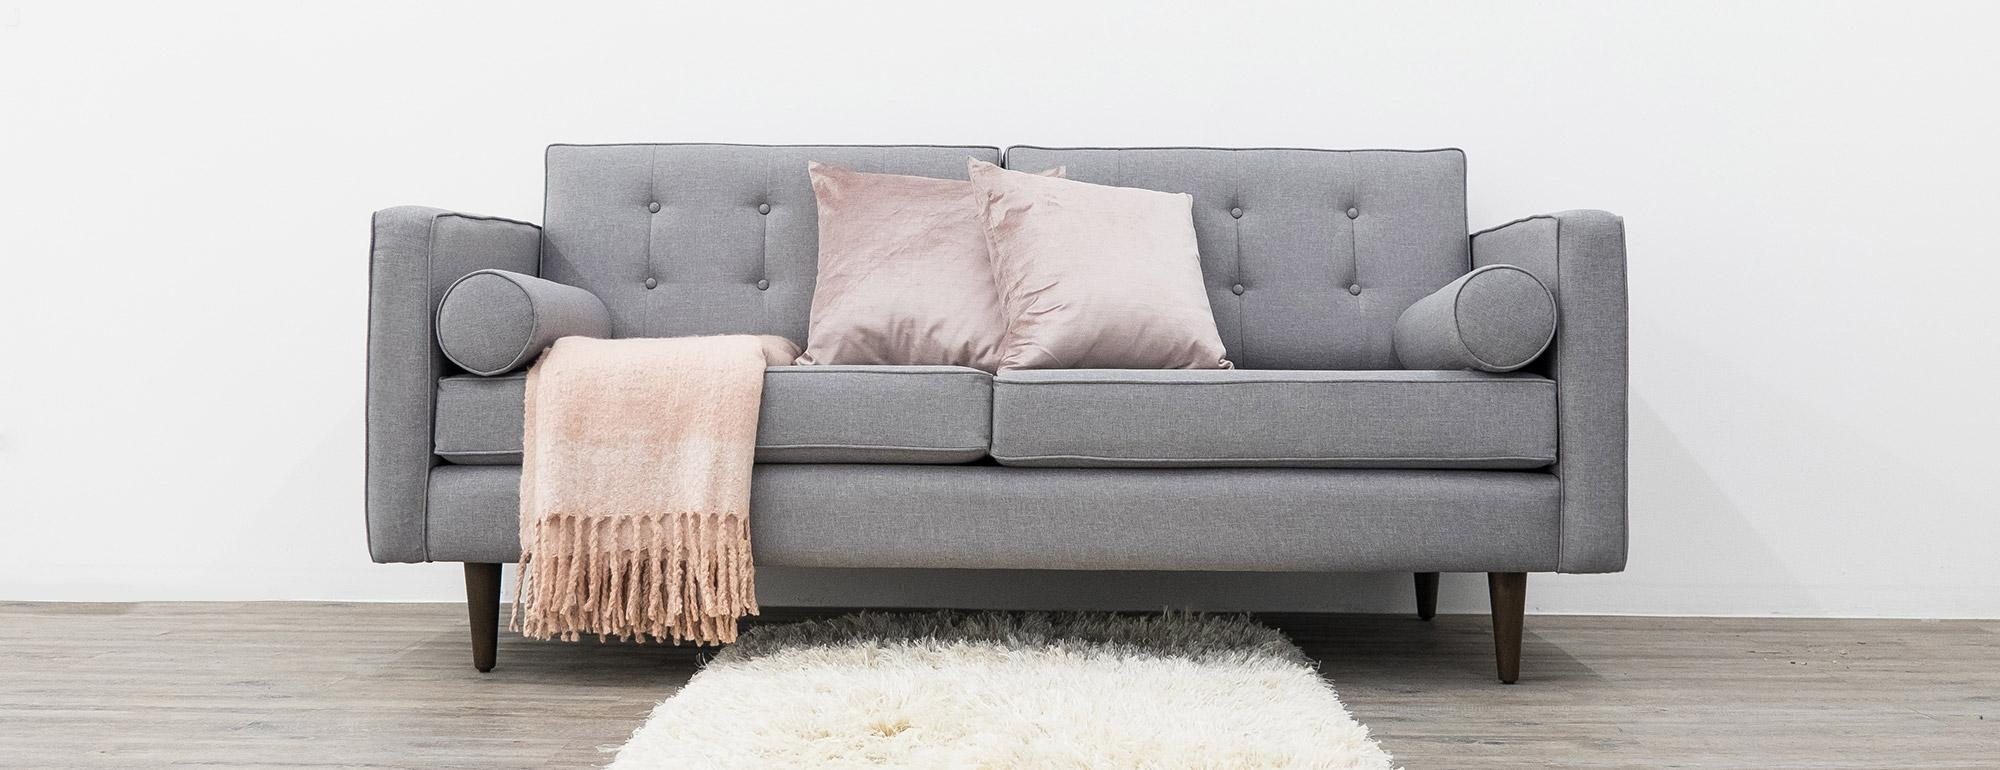 Braxton Loveseat | Joybird In Braxton Sofa (View 10 of 20)